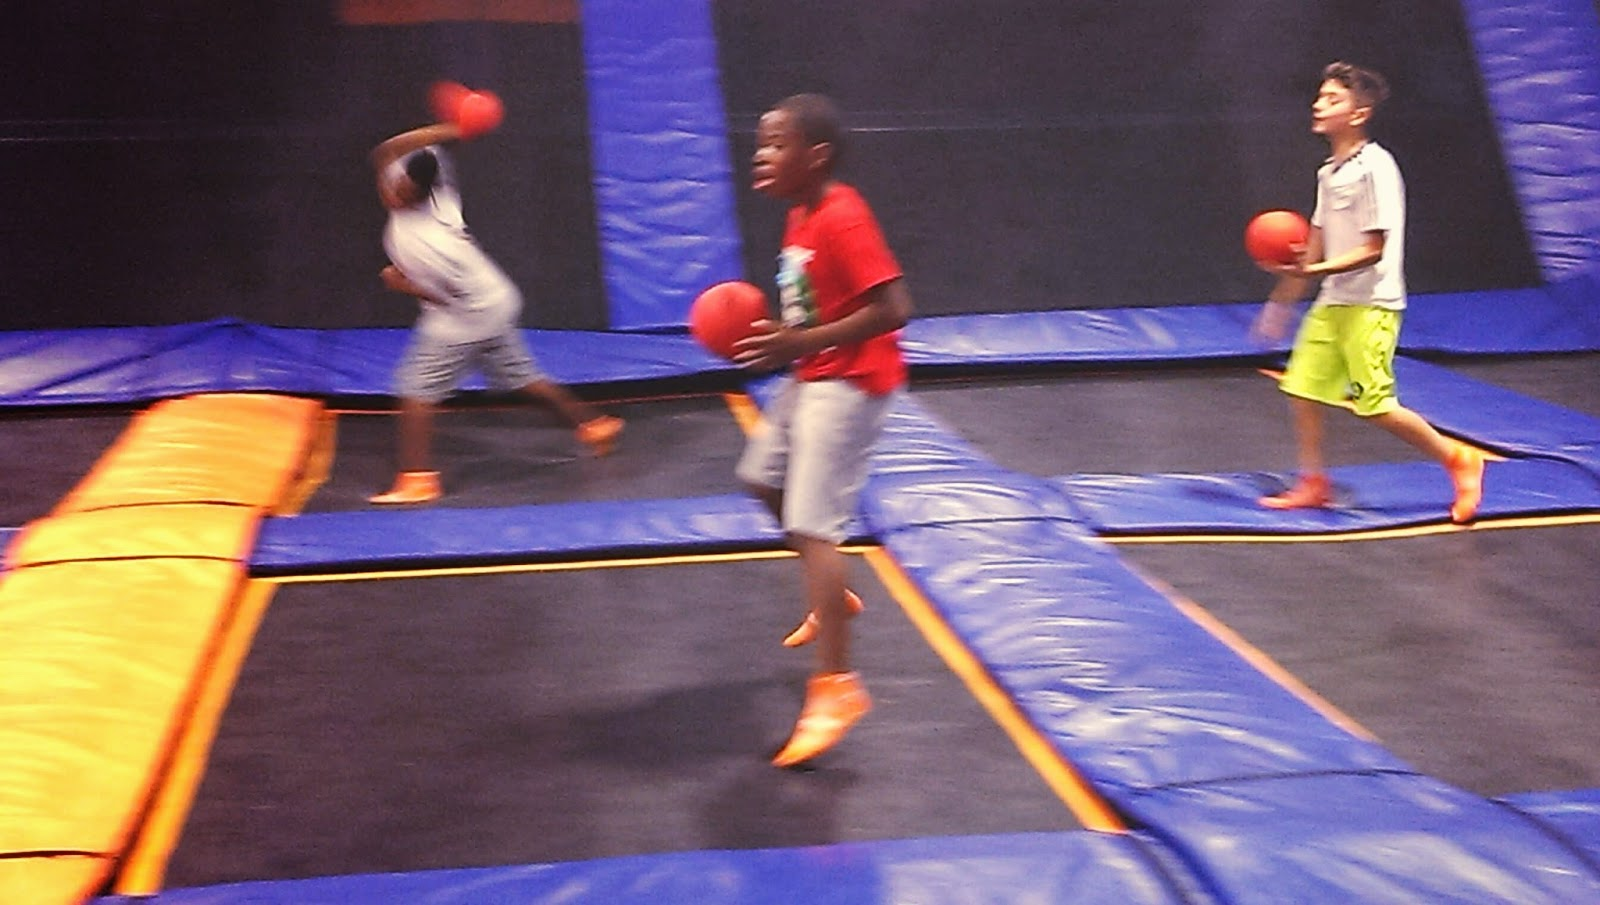 dodge%2Bball Sky Zone Van Nuys Review - Sky Zone Parties - Venues For Birthday Parties in Los Angeles